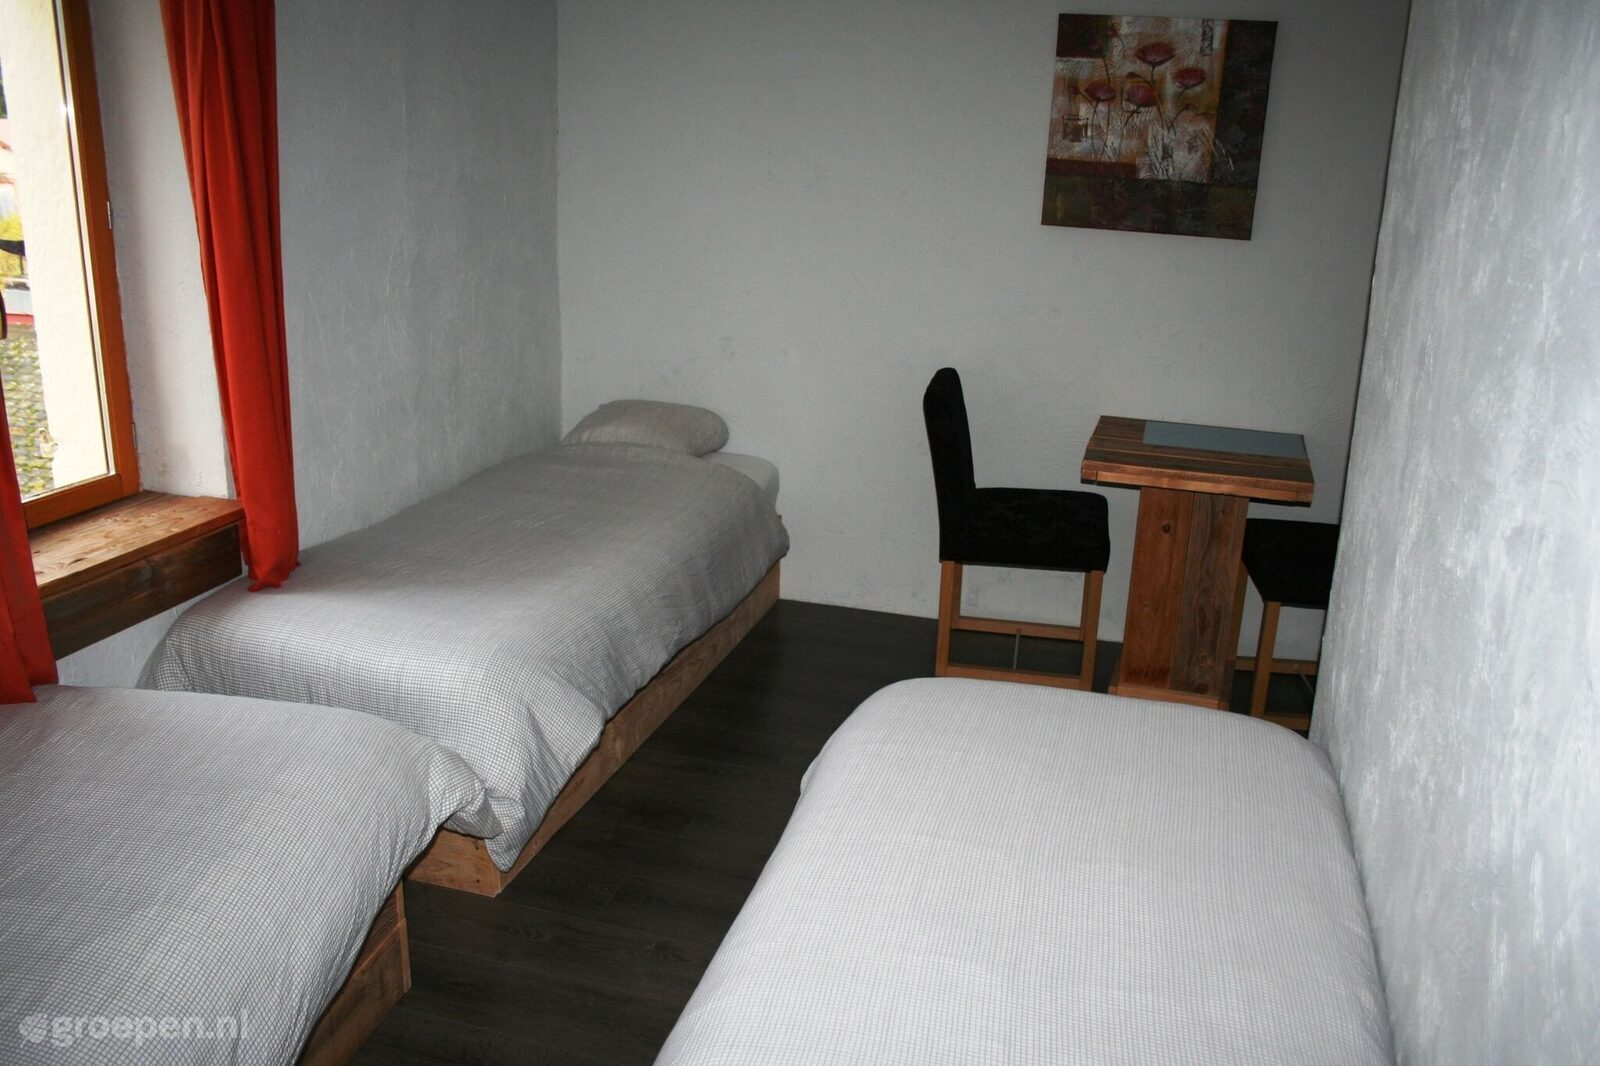 Group accommodation Granges-sur-Vologne